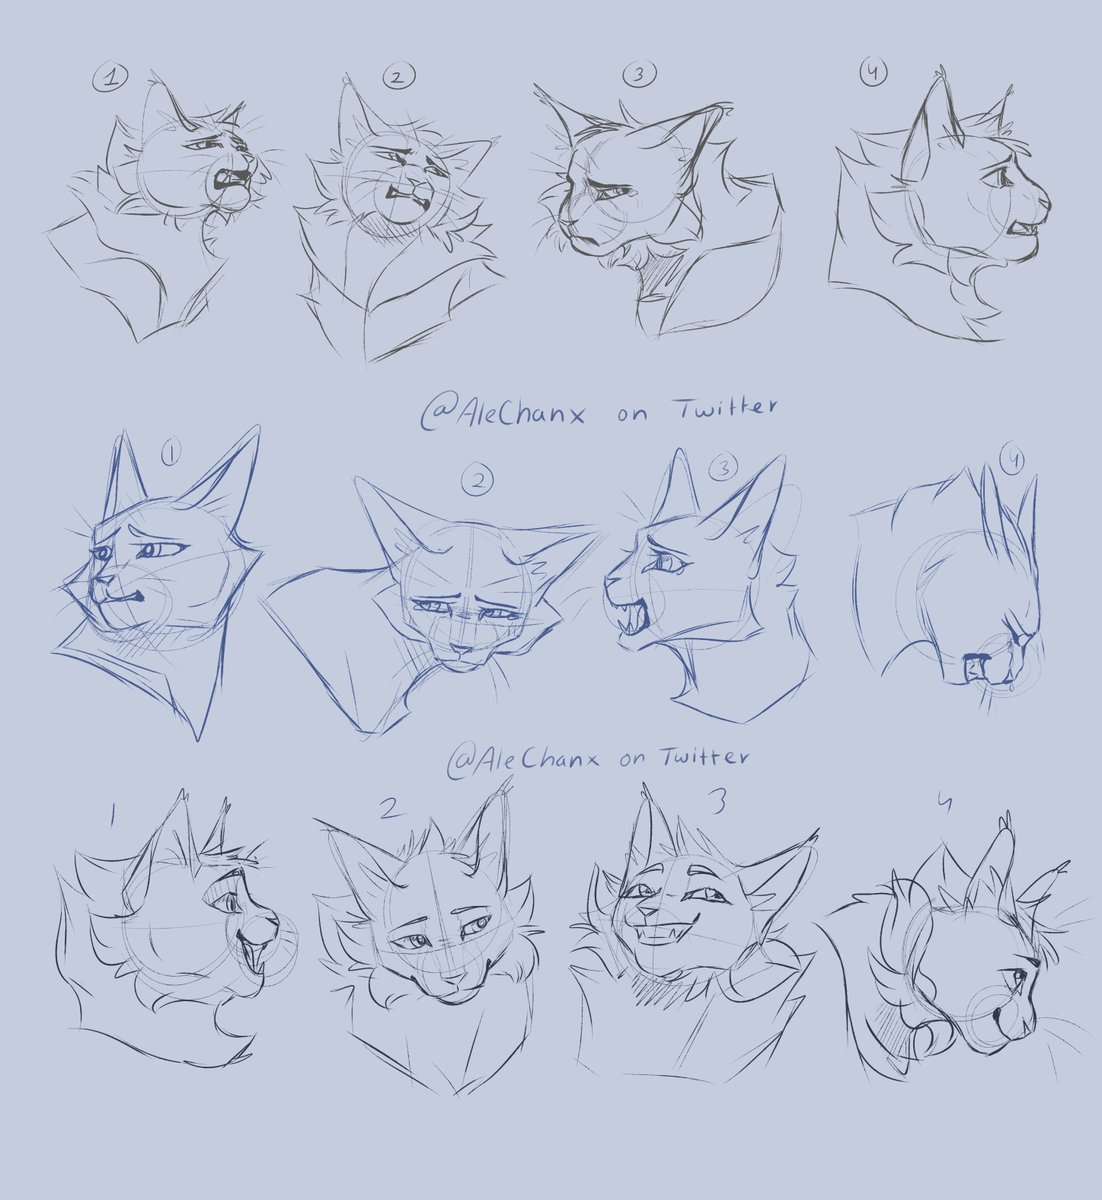 Practicing some #Greystripe and #Silverstream dramatic expressions for a collab with a friend!!   #warriorcats #wc #expressionism #art #arte #digitalartwork #cats #Artist #characterdesign #Character @theclandompic.twitter.com/rYCoQ7crmP